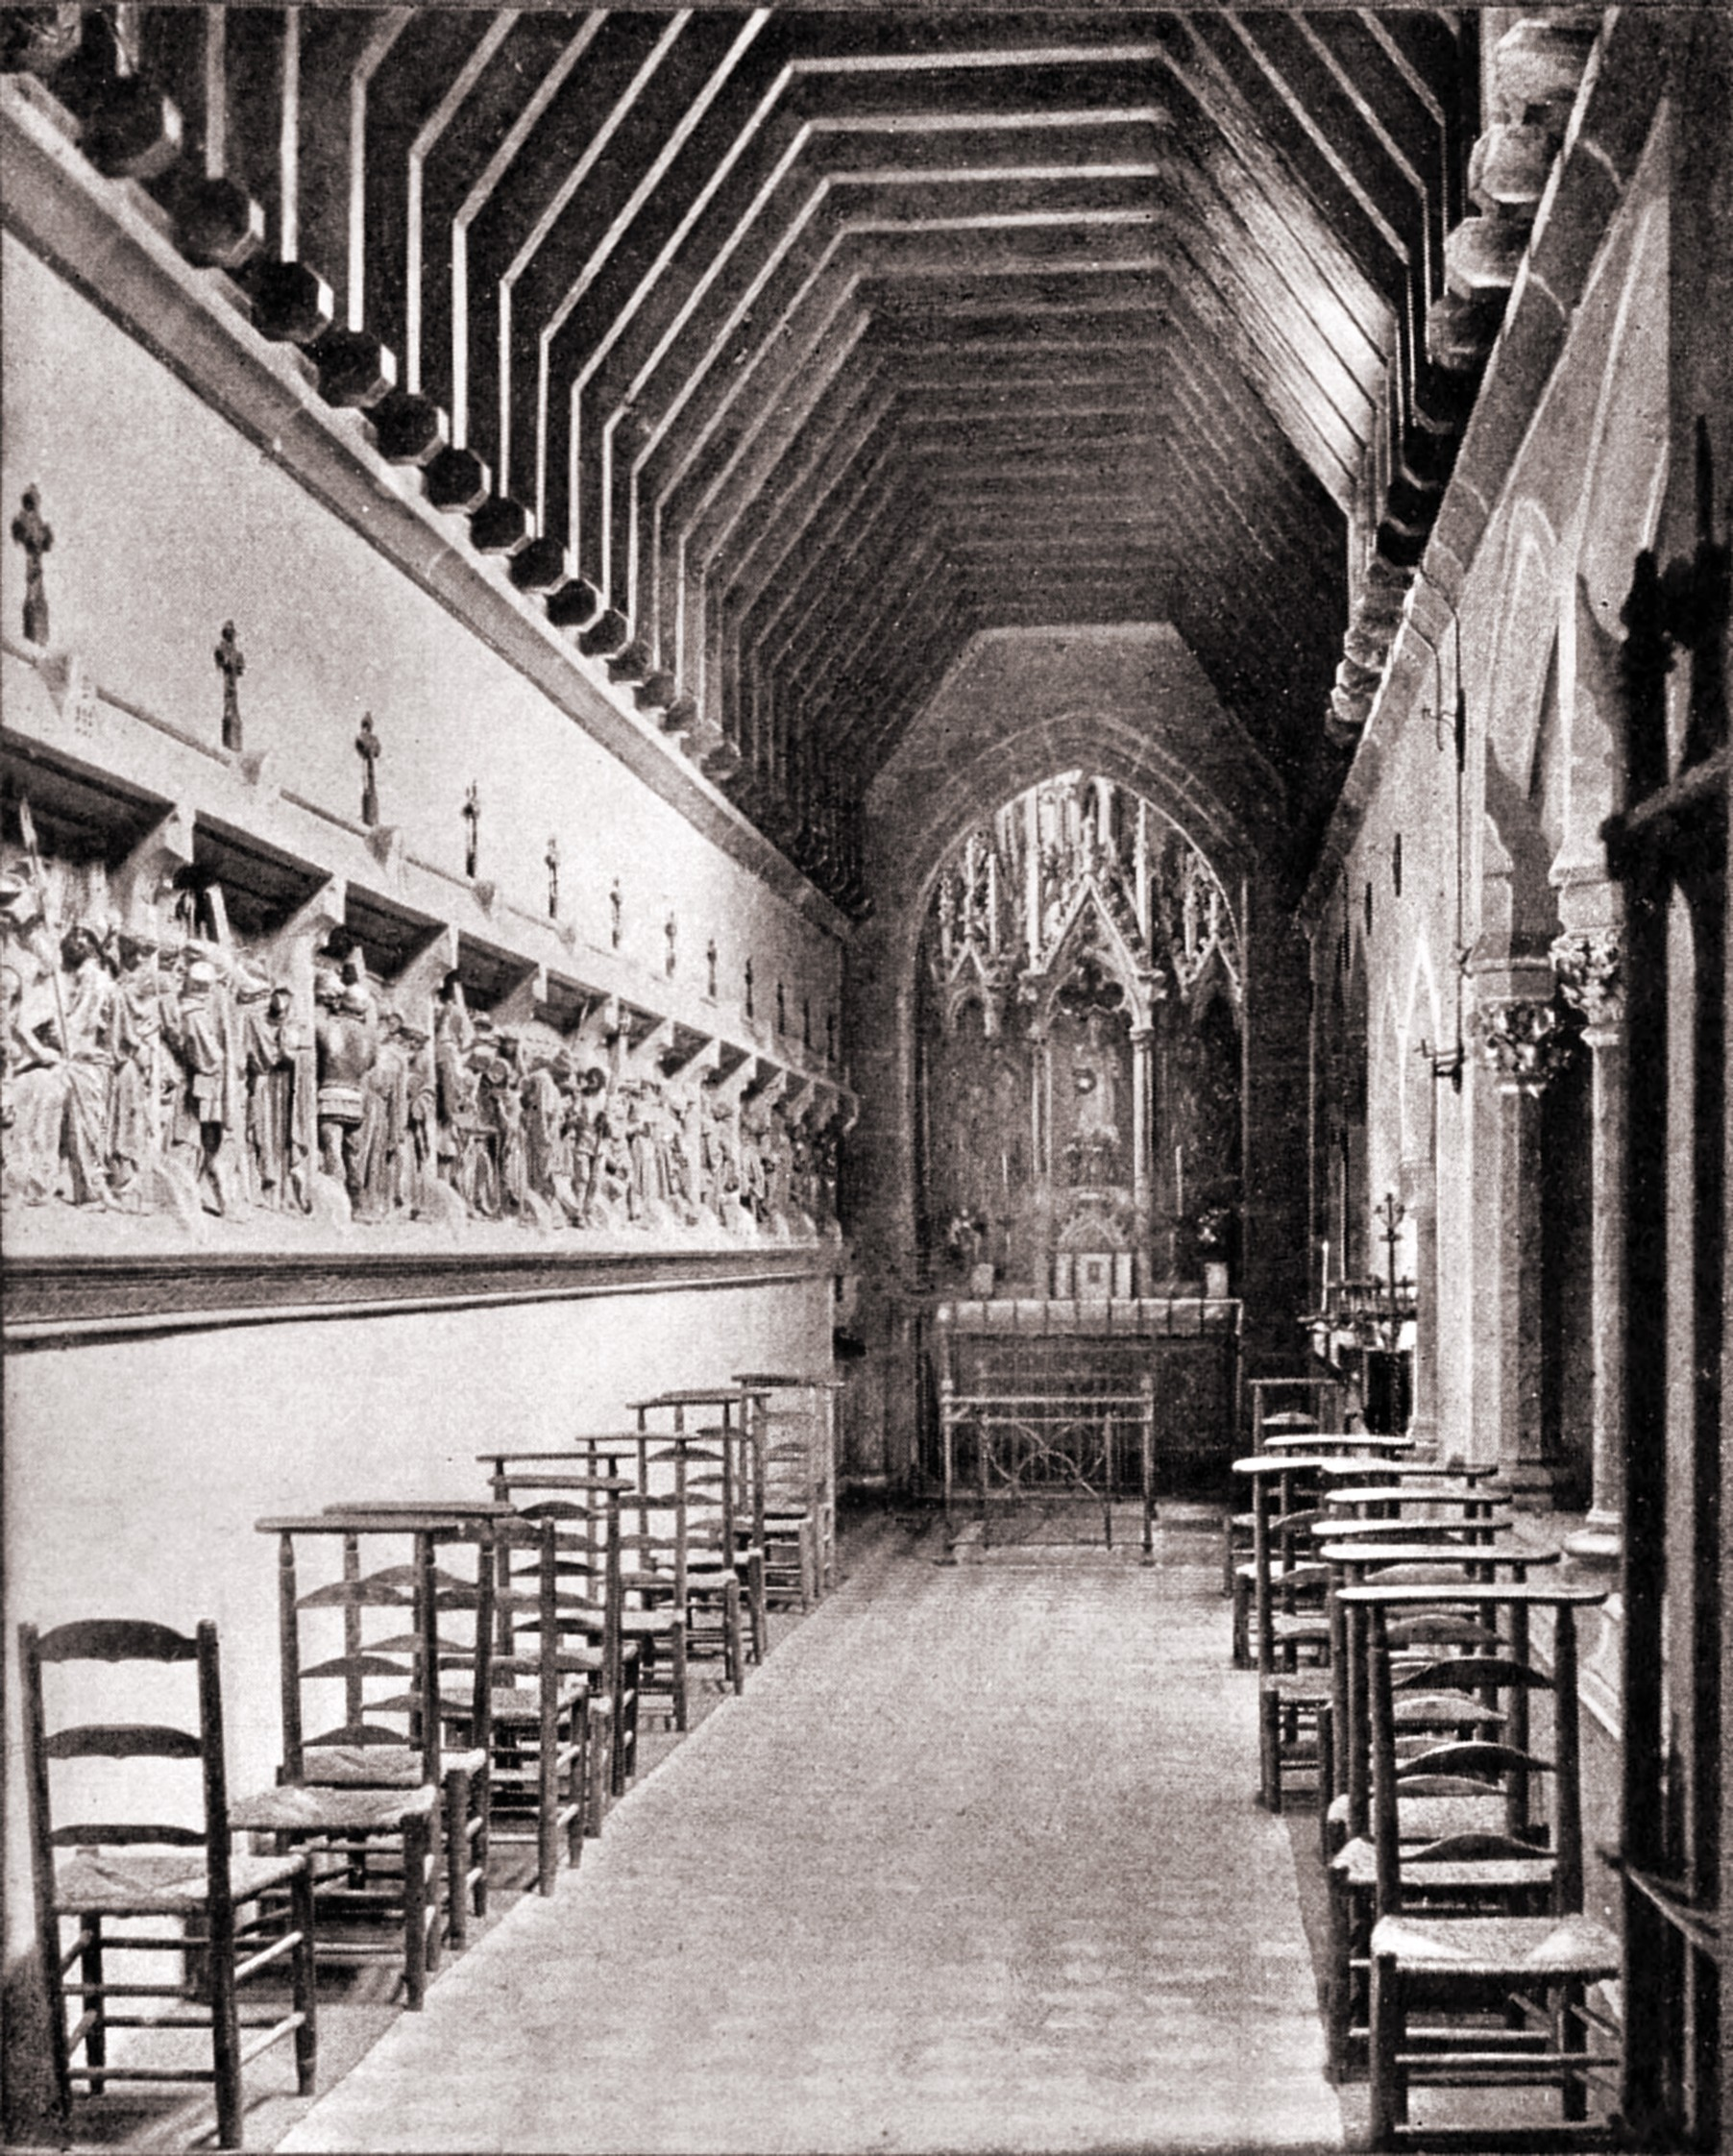 Chapel of the Sacred Heart, St Augustine's Church, Ramsgate, England by A. Lockett about 1923